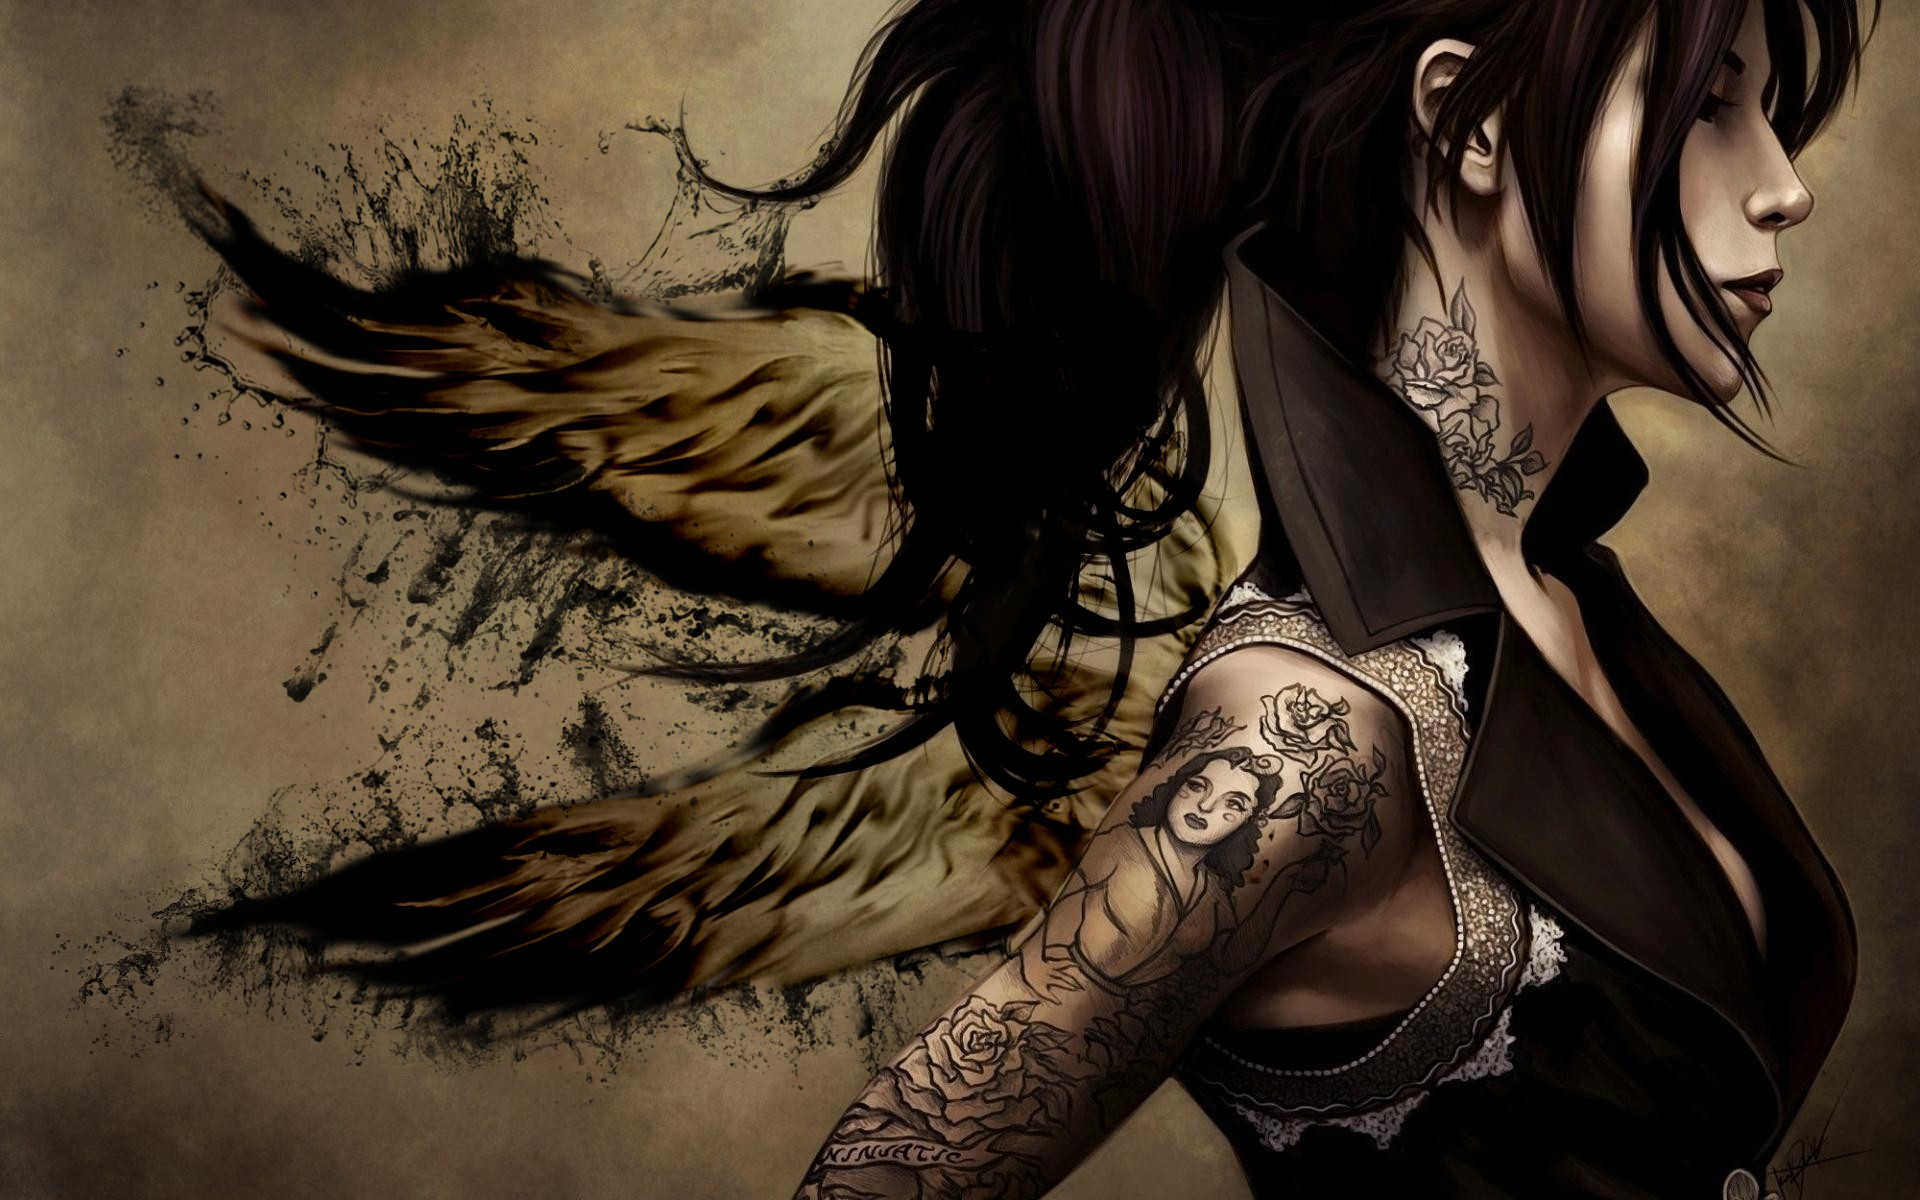 Hd wallpaper tattoo - Tattoo Hd Wallpapers Winged Tattoo Desktop Wallpapers Winged Tattoo